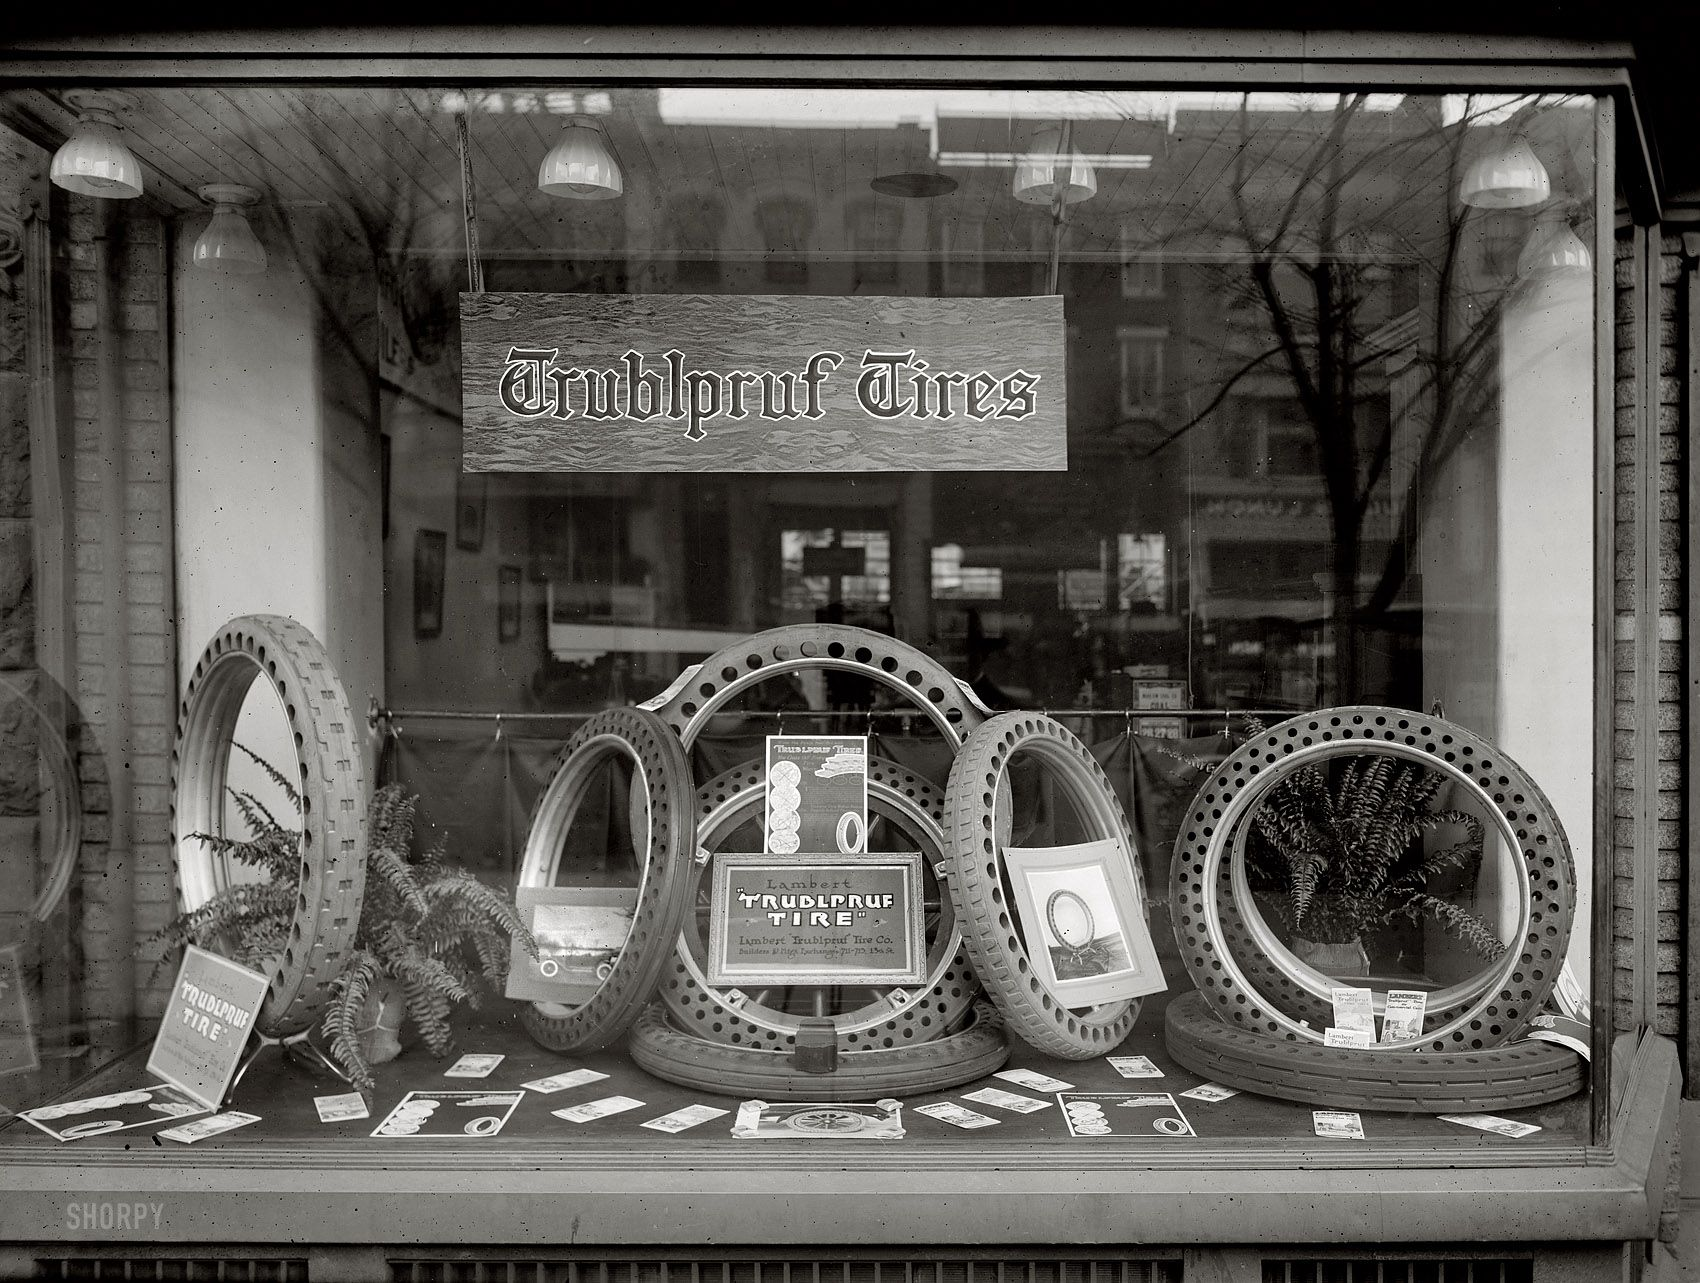 """Washington, D.C., circa 1920. """"Draper window."""" A display for Lambert Trublpruf solid rubber tires, a business owned by Charles W. Draper."""